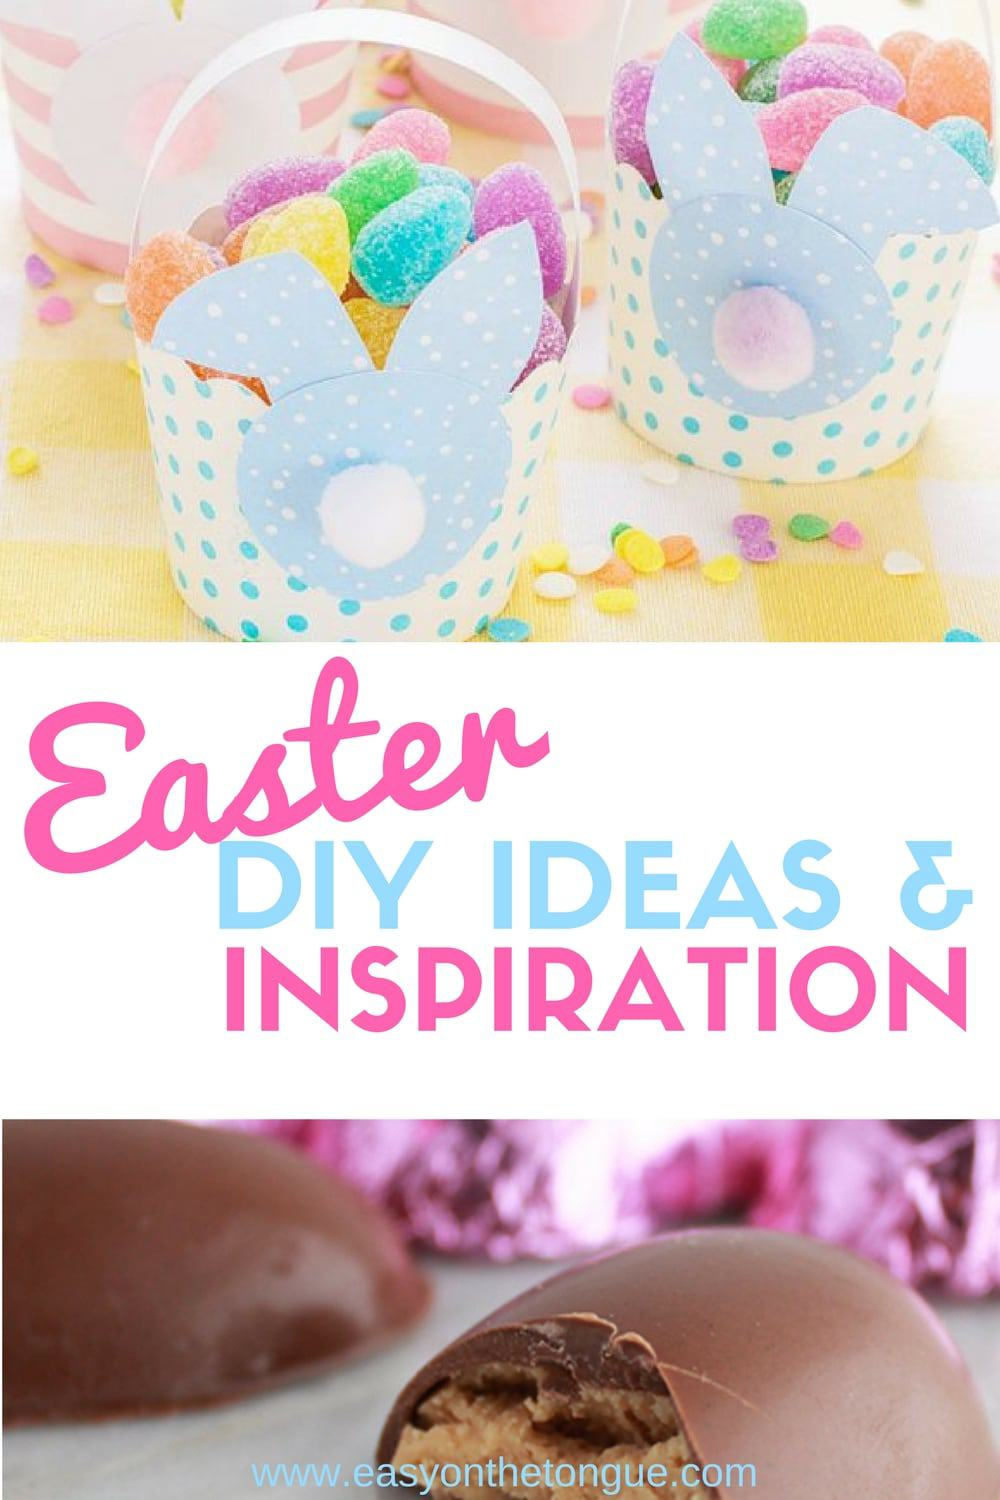 The 10 best adorable easter diy gift inspirations printables easter diy ideas inspiration the 10 best adorable easter diy gift inspirations printables negle Choice Image